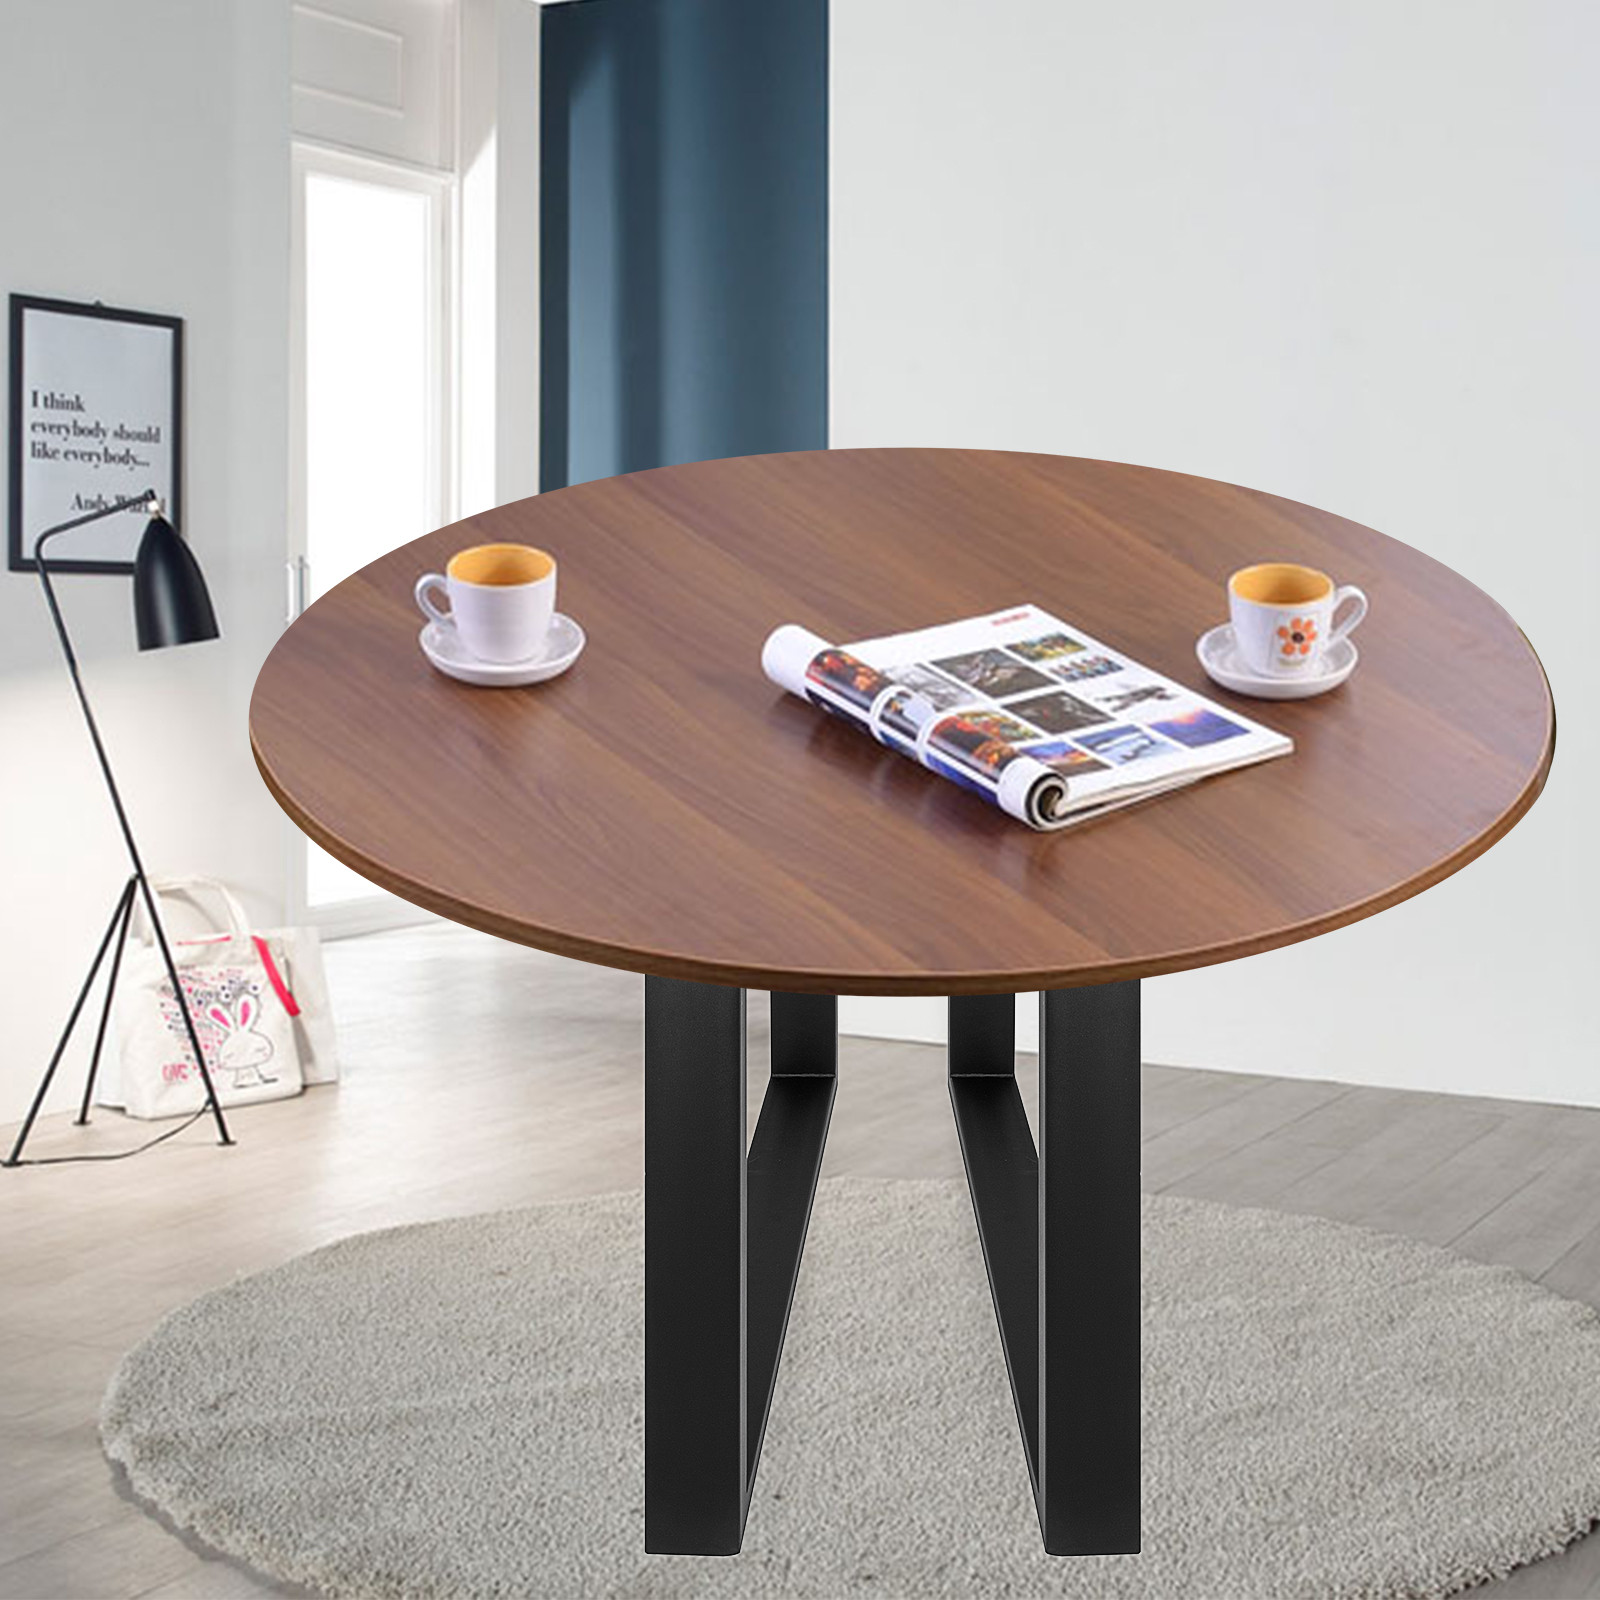 2X-Table-Legs-Black-Dining-Table-Leg-Heavy-Duty-Computer-Desk-Legs-Rectangle thumbnail 46